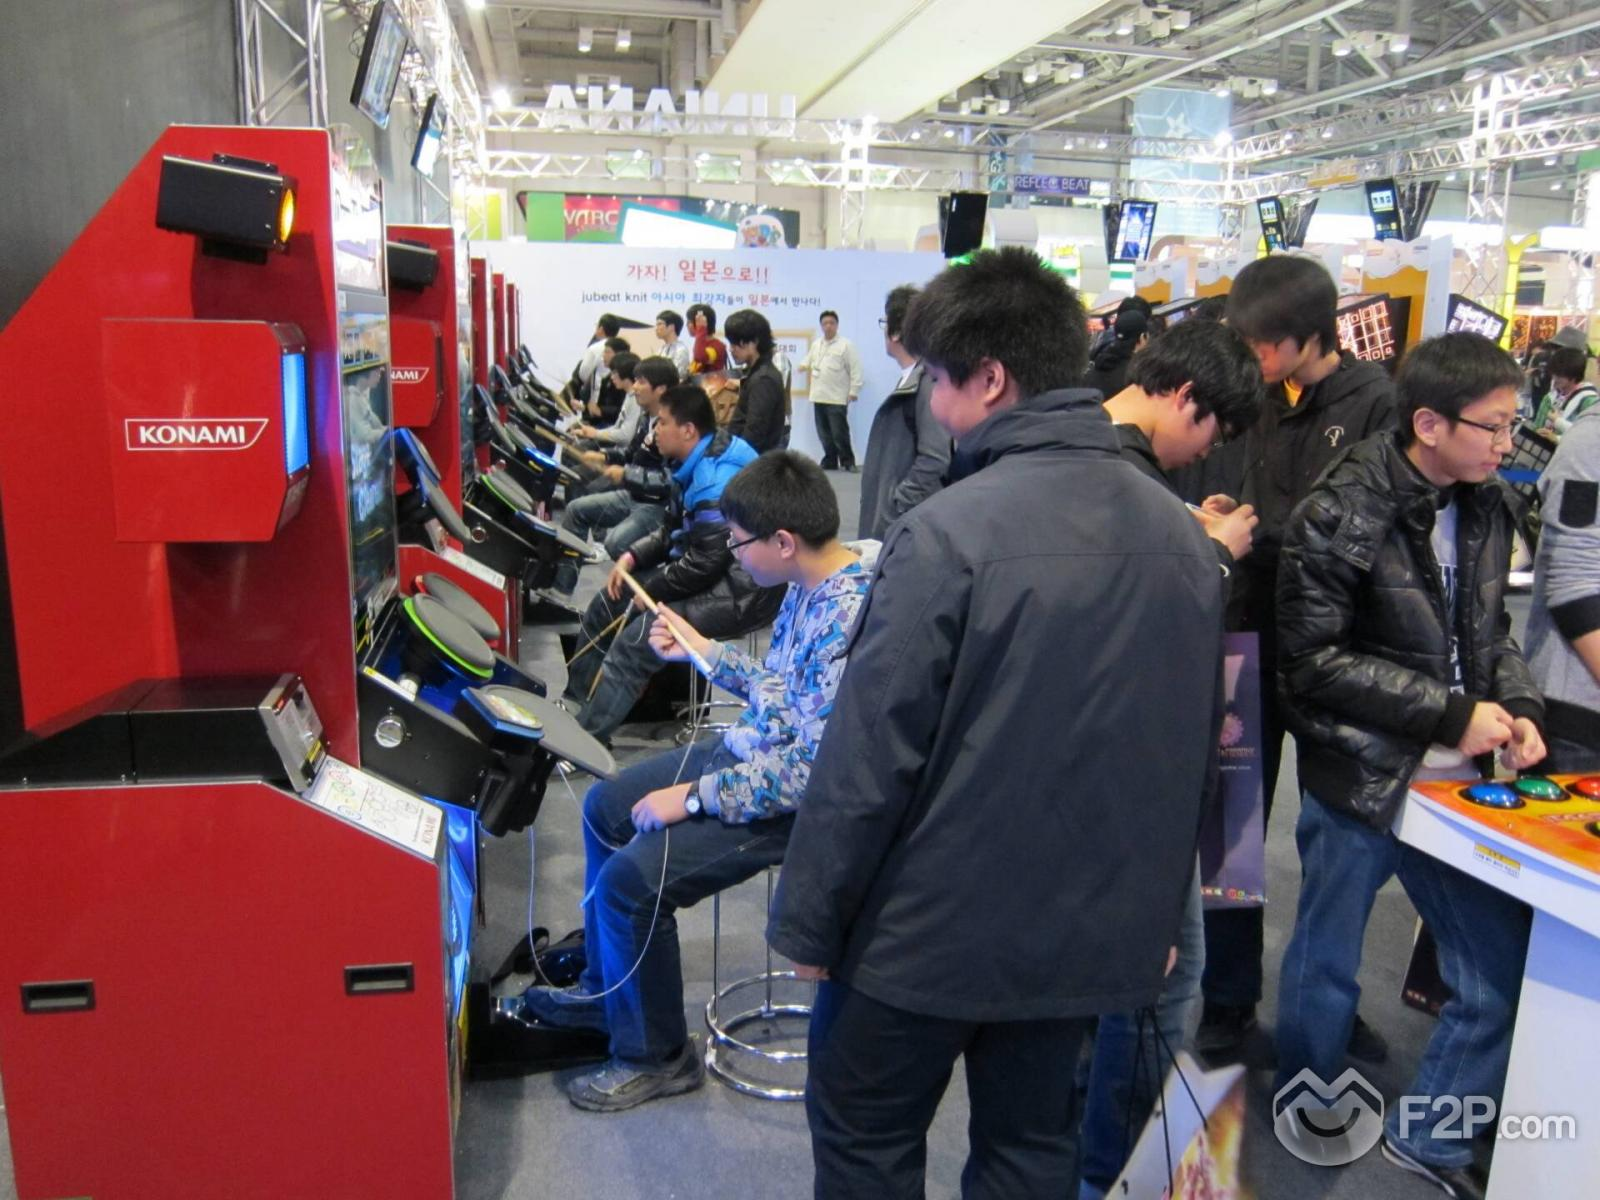 Click image for larger version.Name:Gstar 2010 F2P first day 20.jpgViews:59Size:219.7 KBID:1872